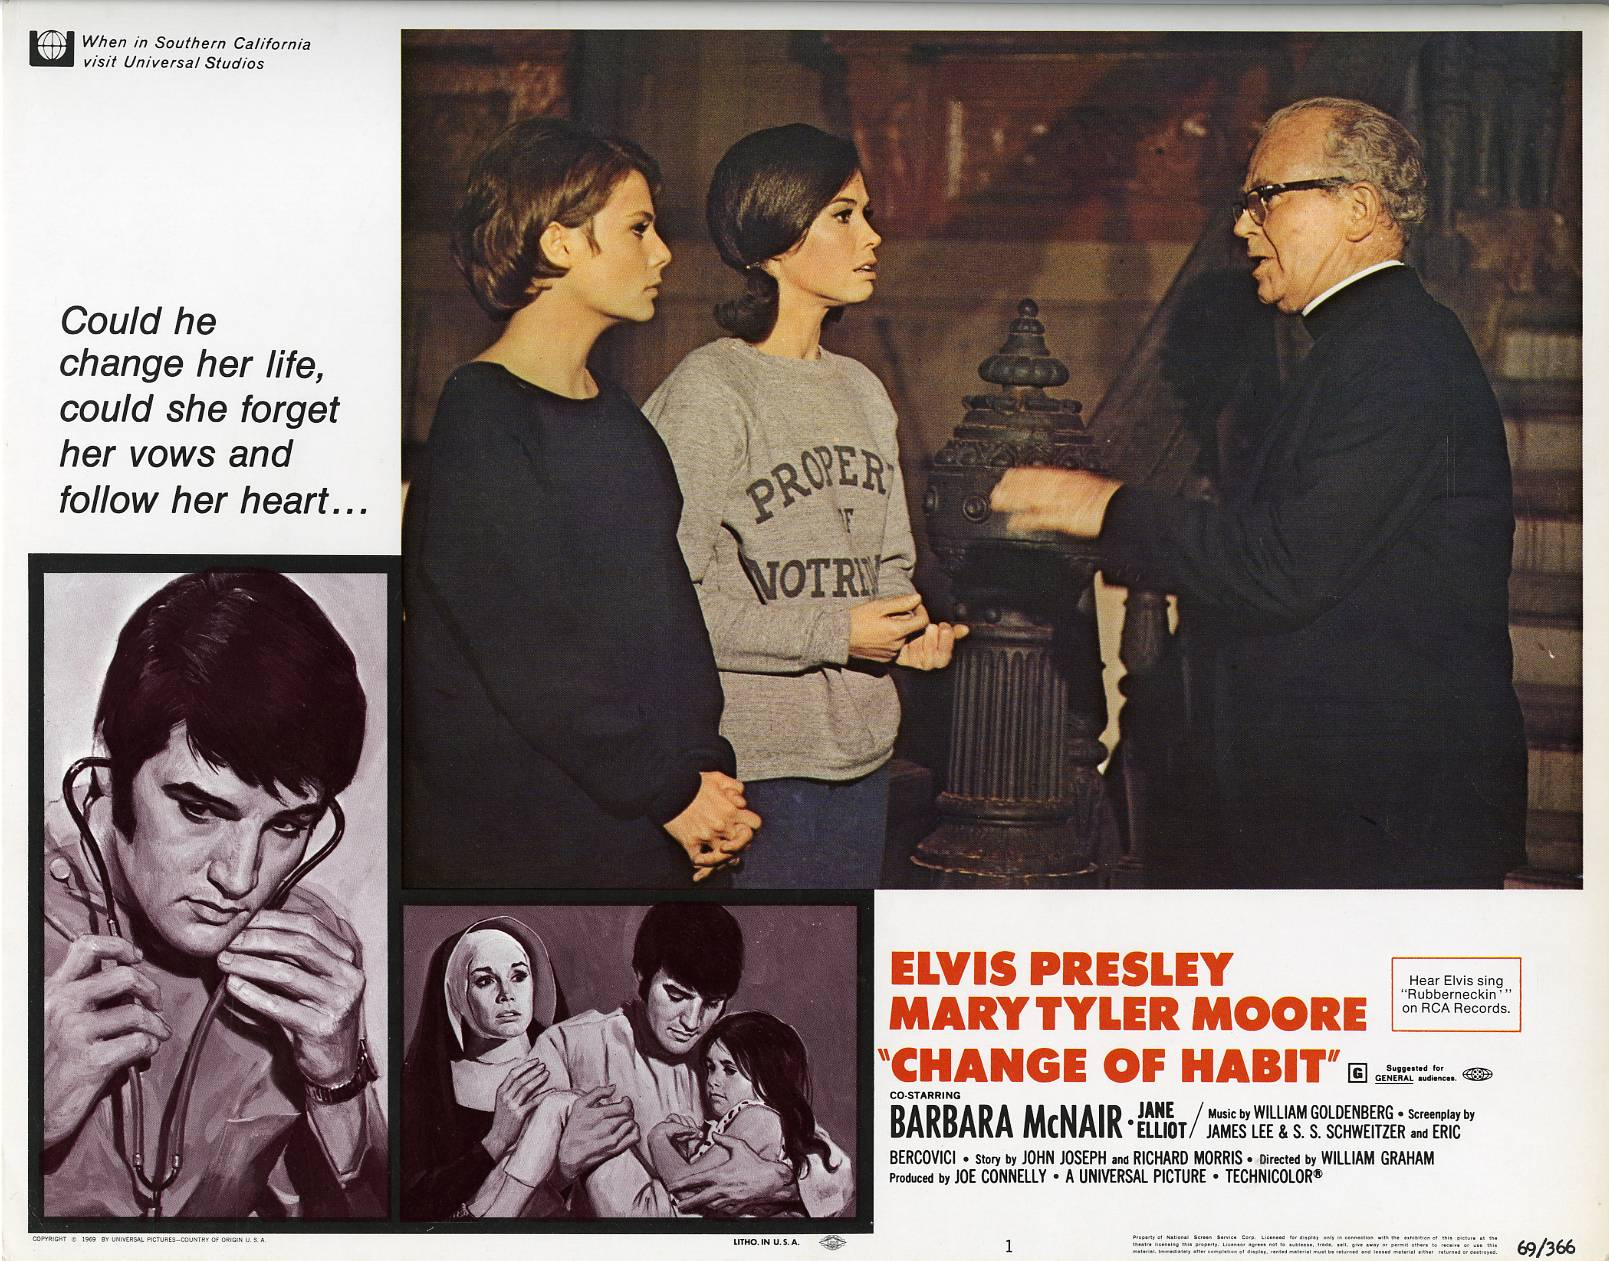 Elvis Presley, Mary Tyler Moore, Jane Elliot, and Regis Toomey in Change of Habit (1969)